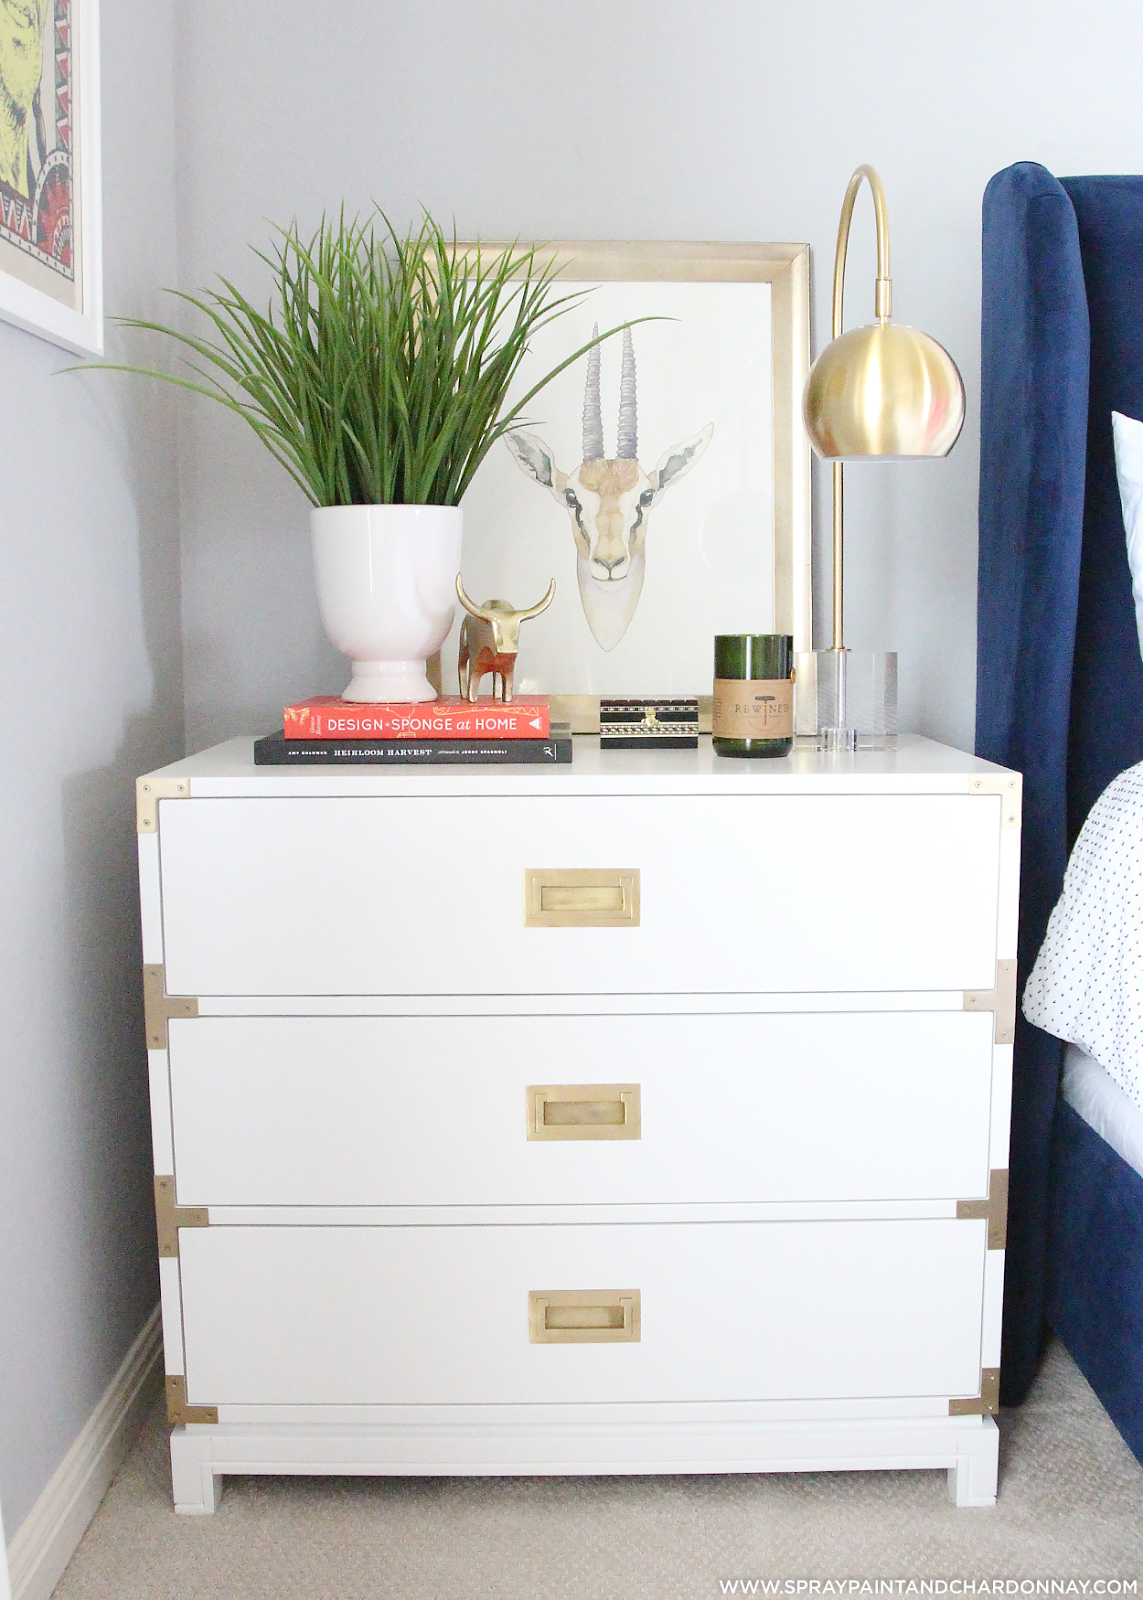 Carlyle Campaign Dresser in white and styled